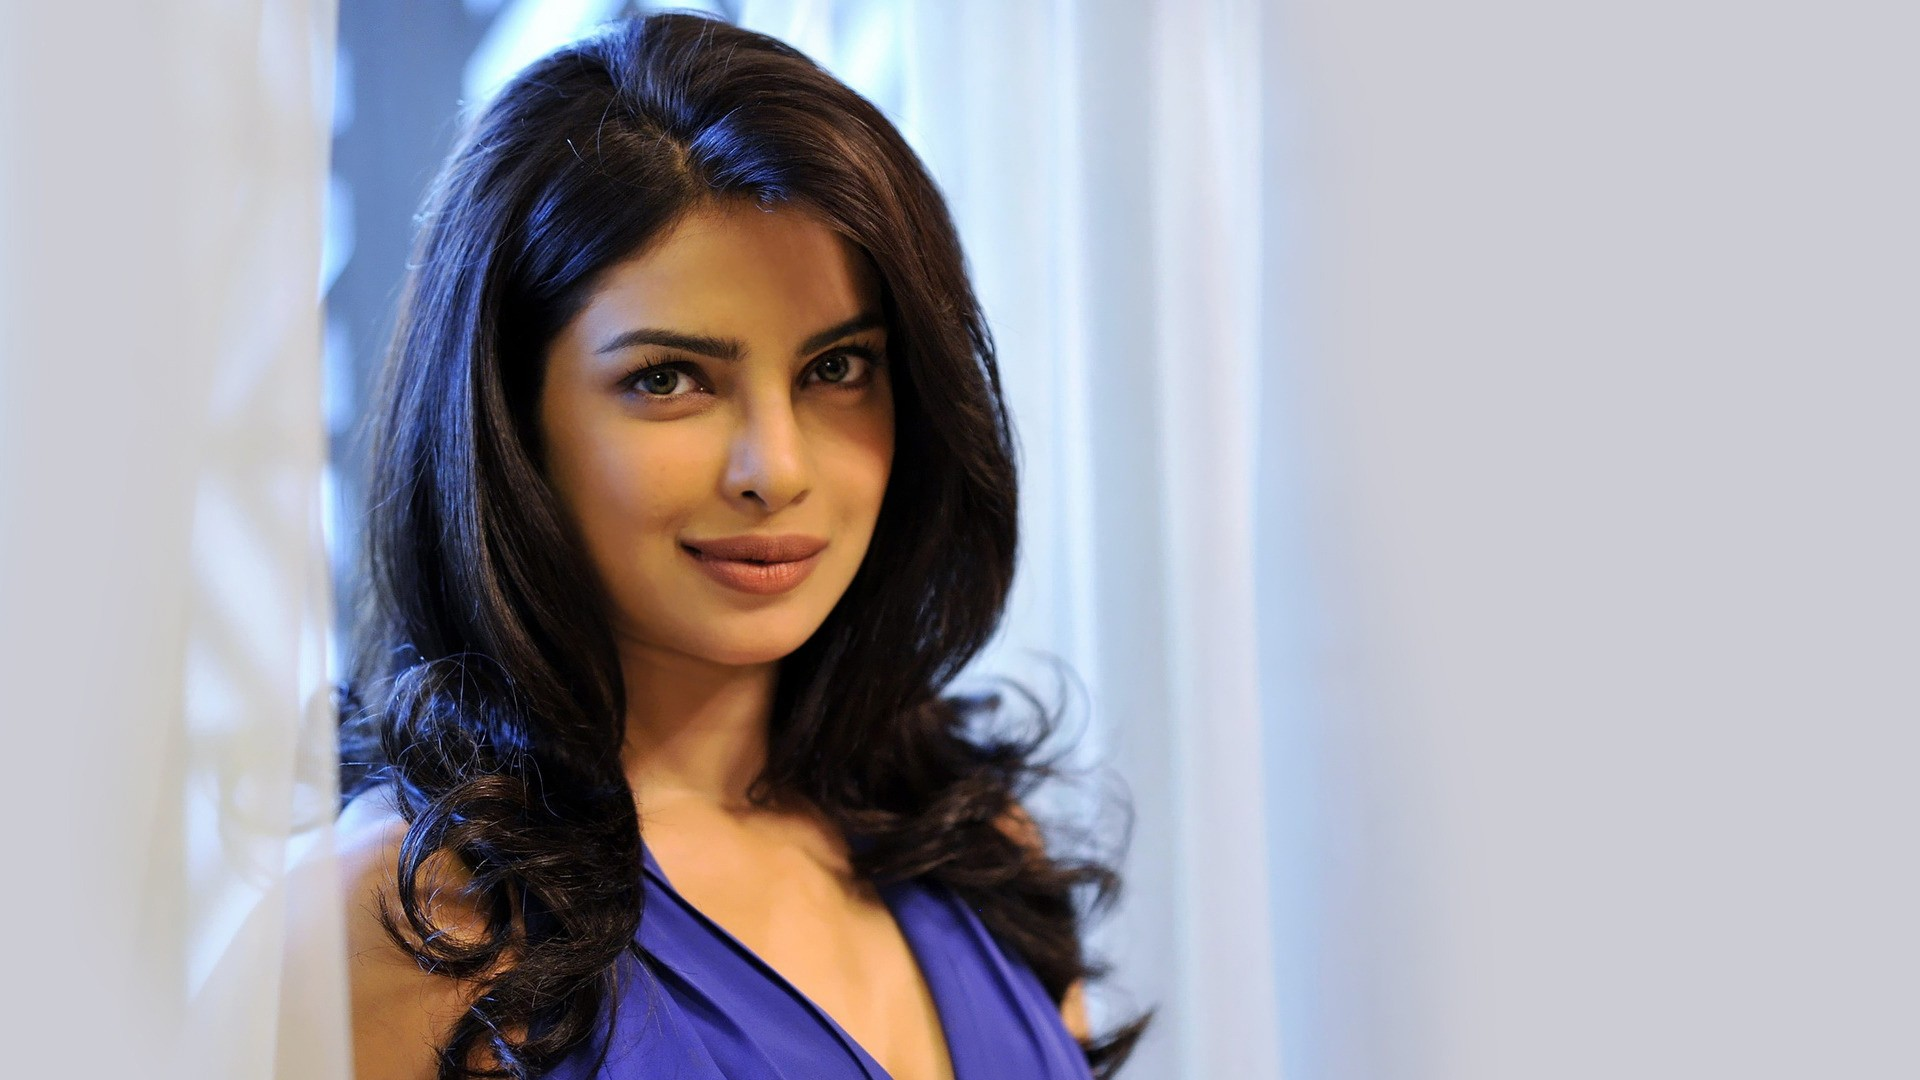 Stunning Priyanka Chopra Wallpaper